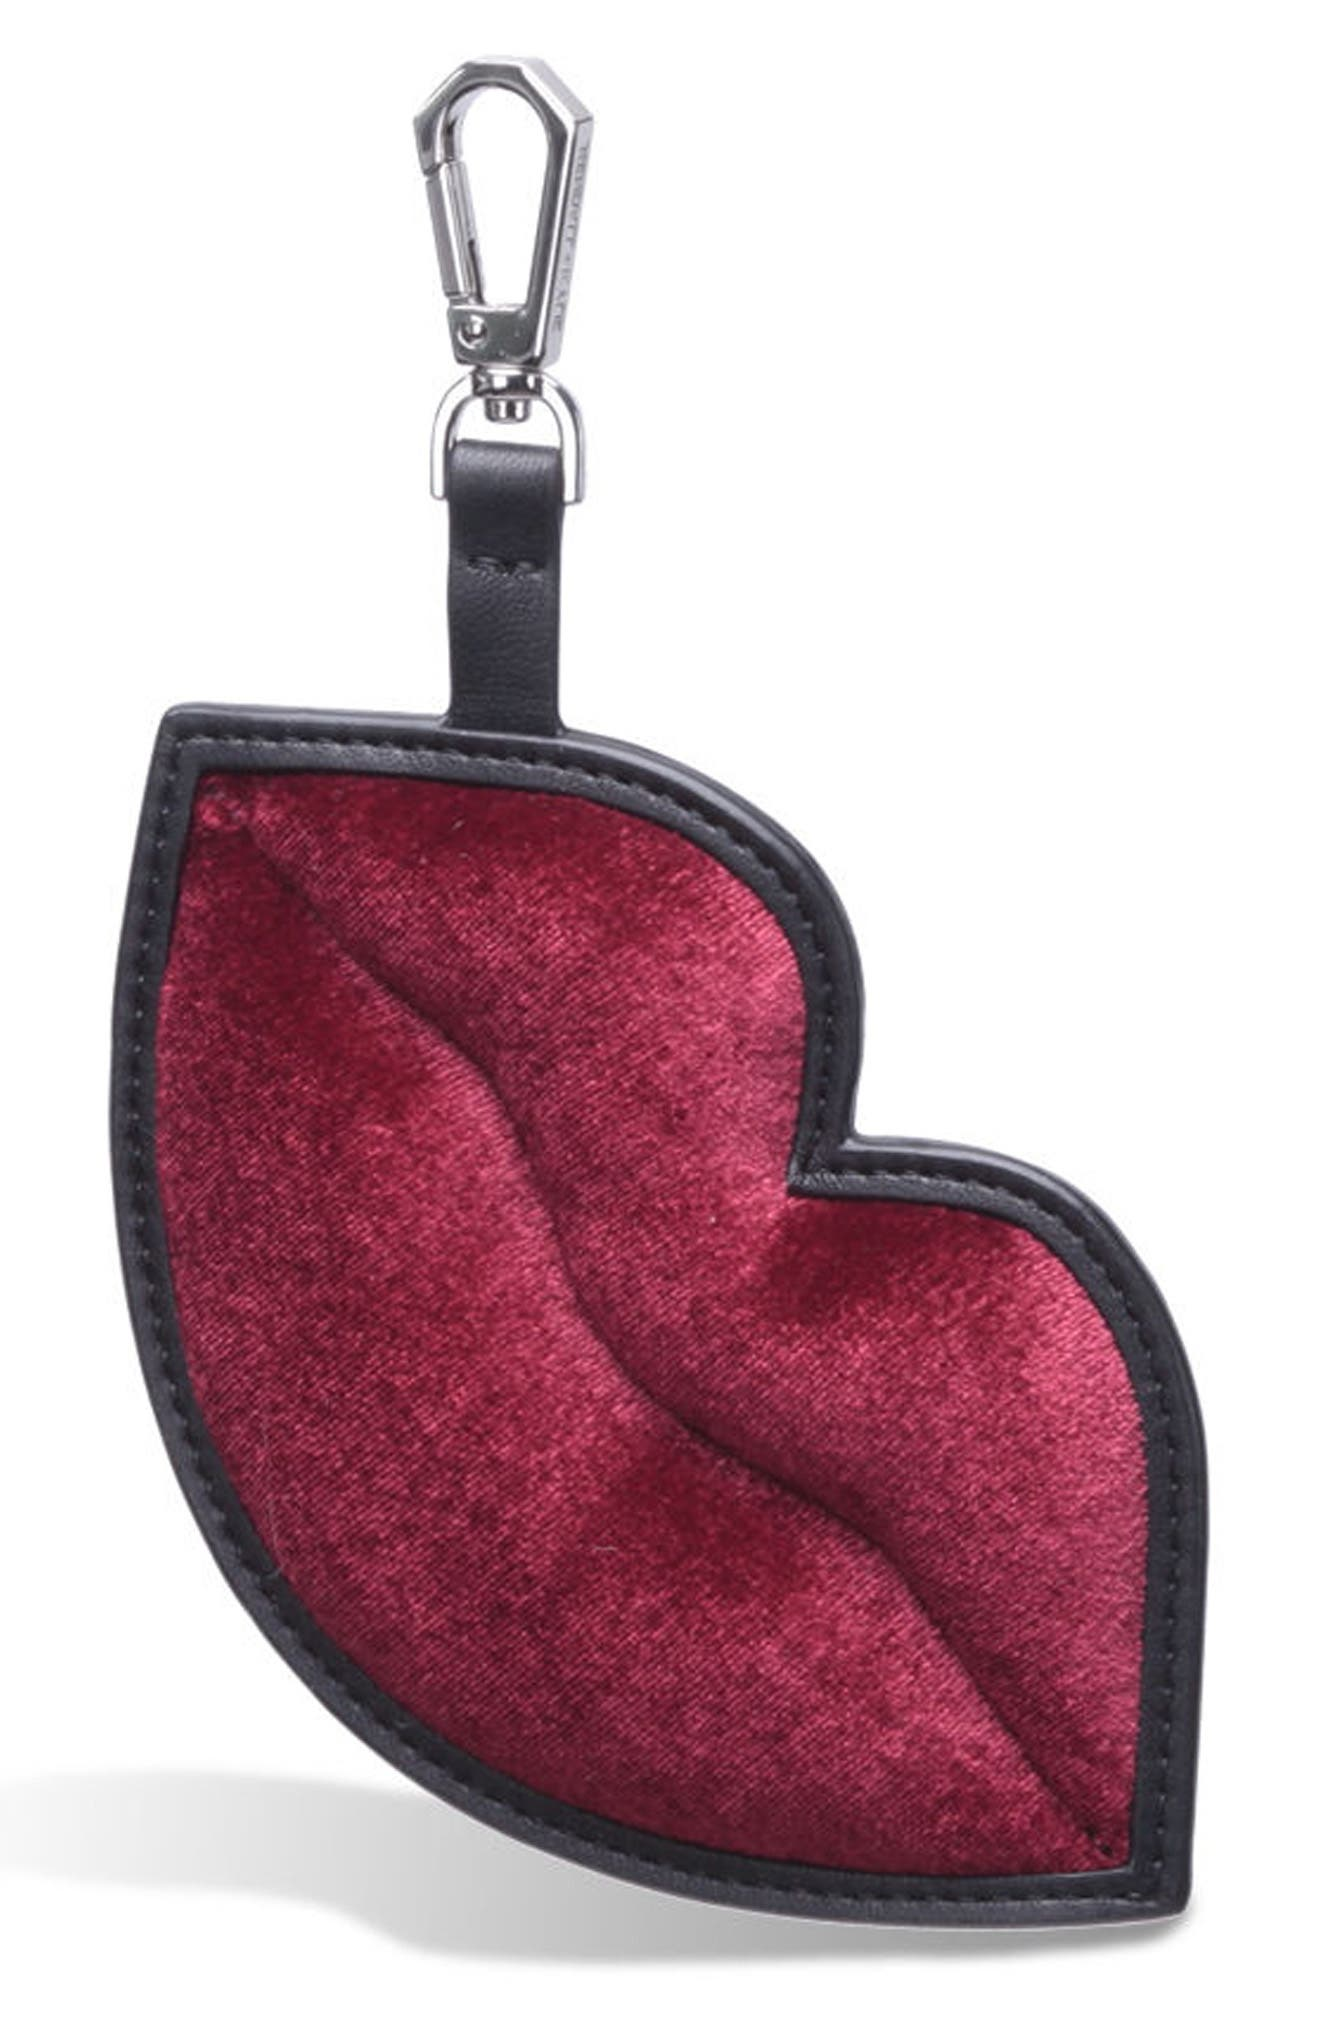 Alternate Image 1 Selected - KENDALL + KYLIE Lush Lips Bag Charm